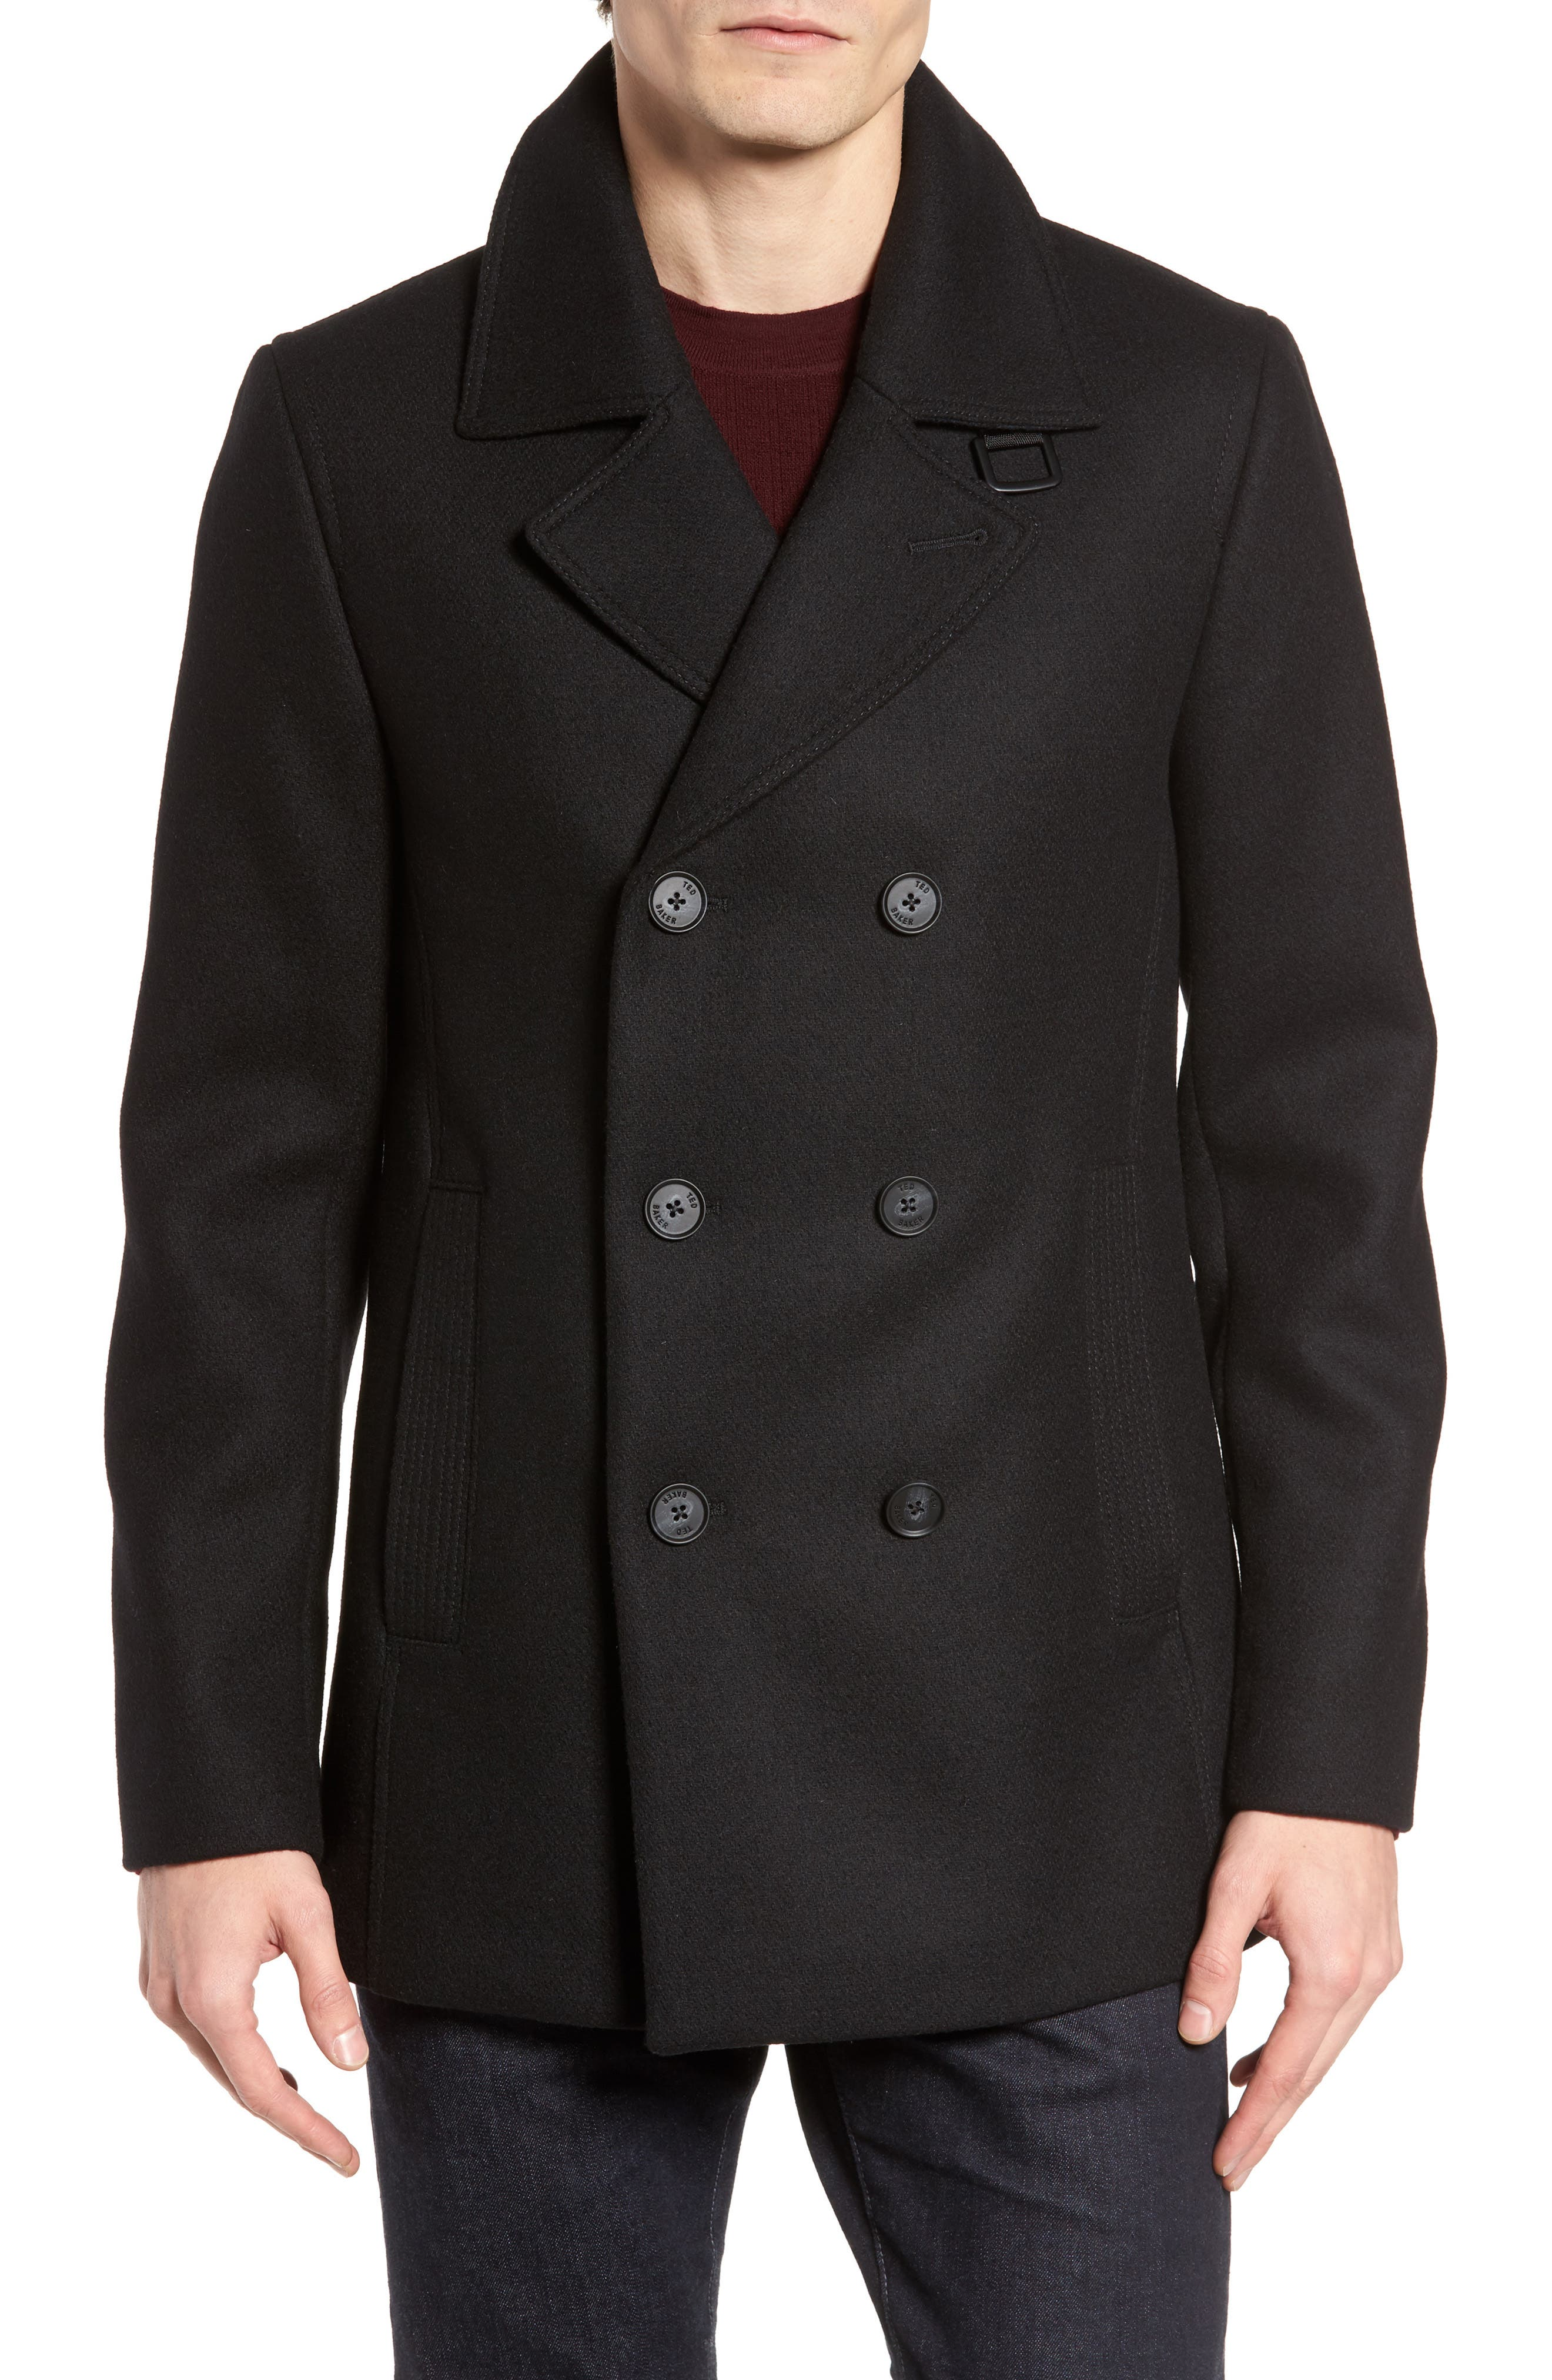 Zachary Trim Fit Double Breasted Peacoat,                         Main,                         color, 001